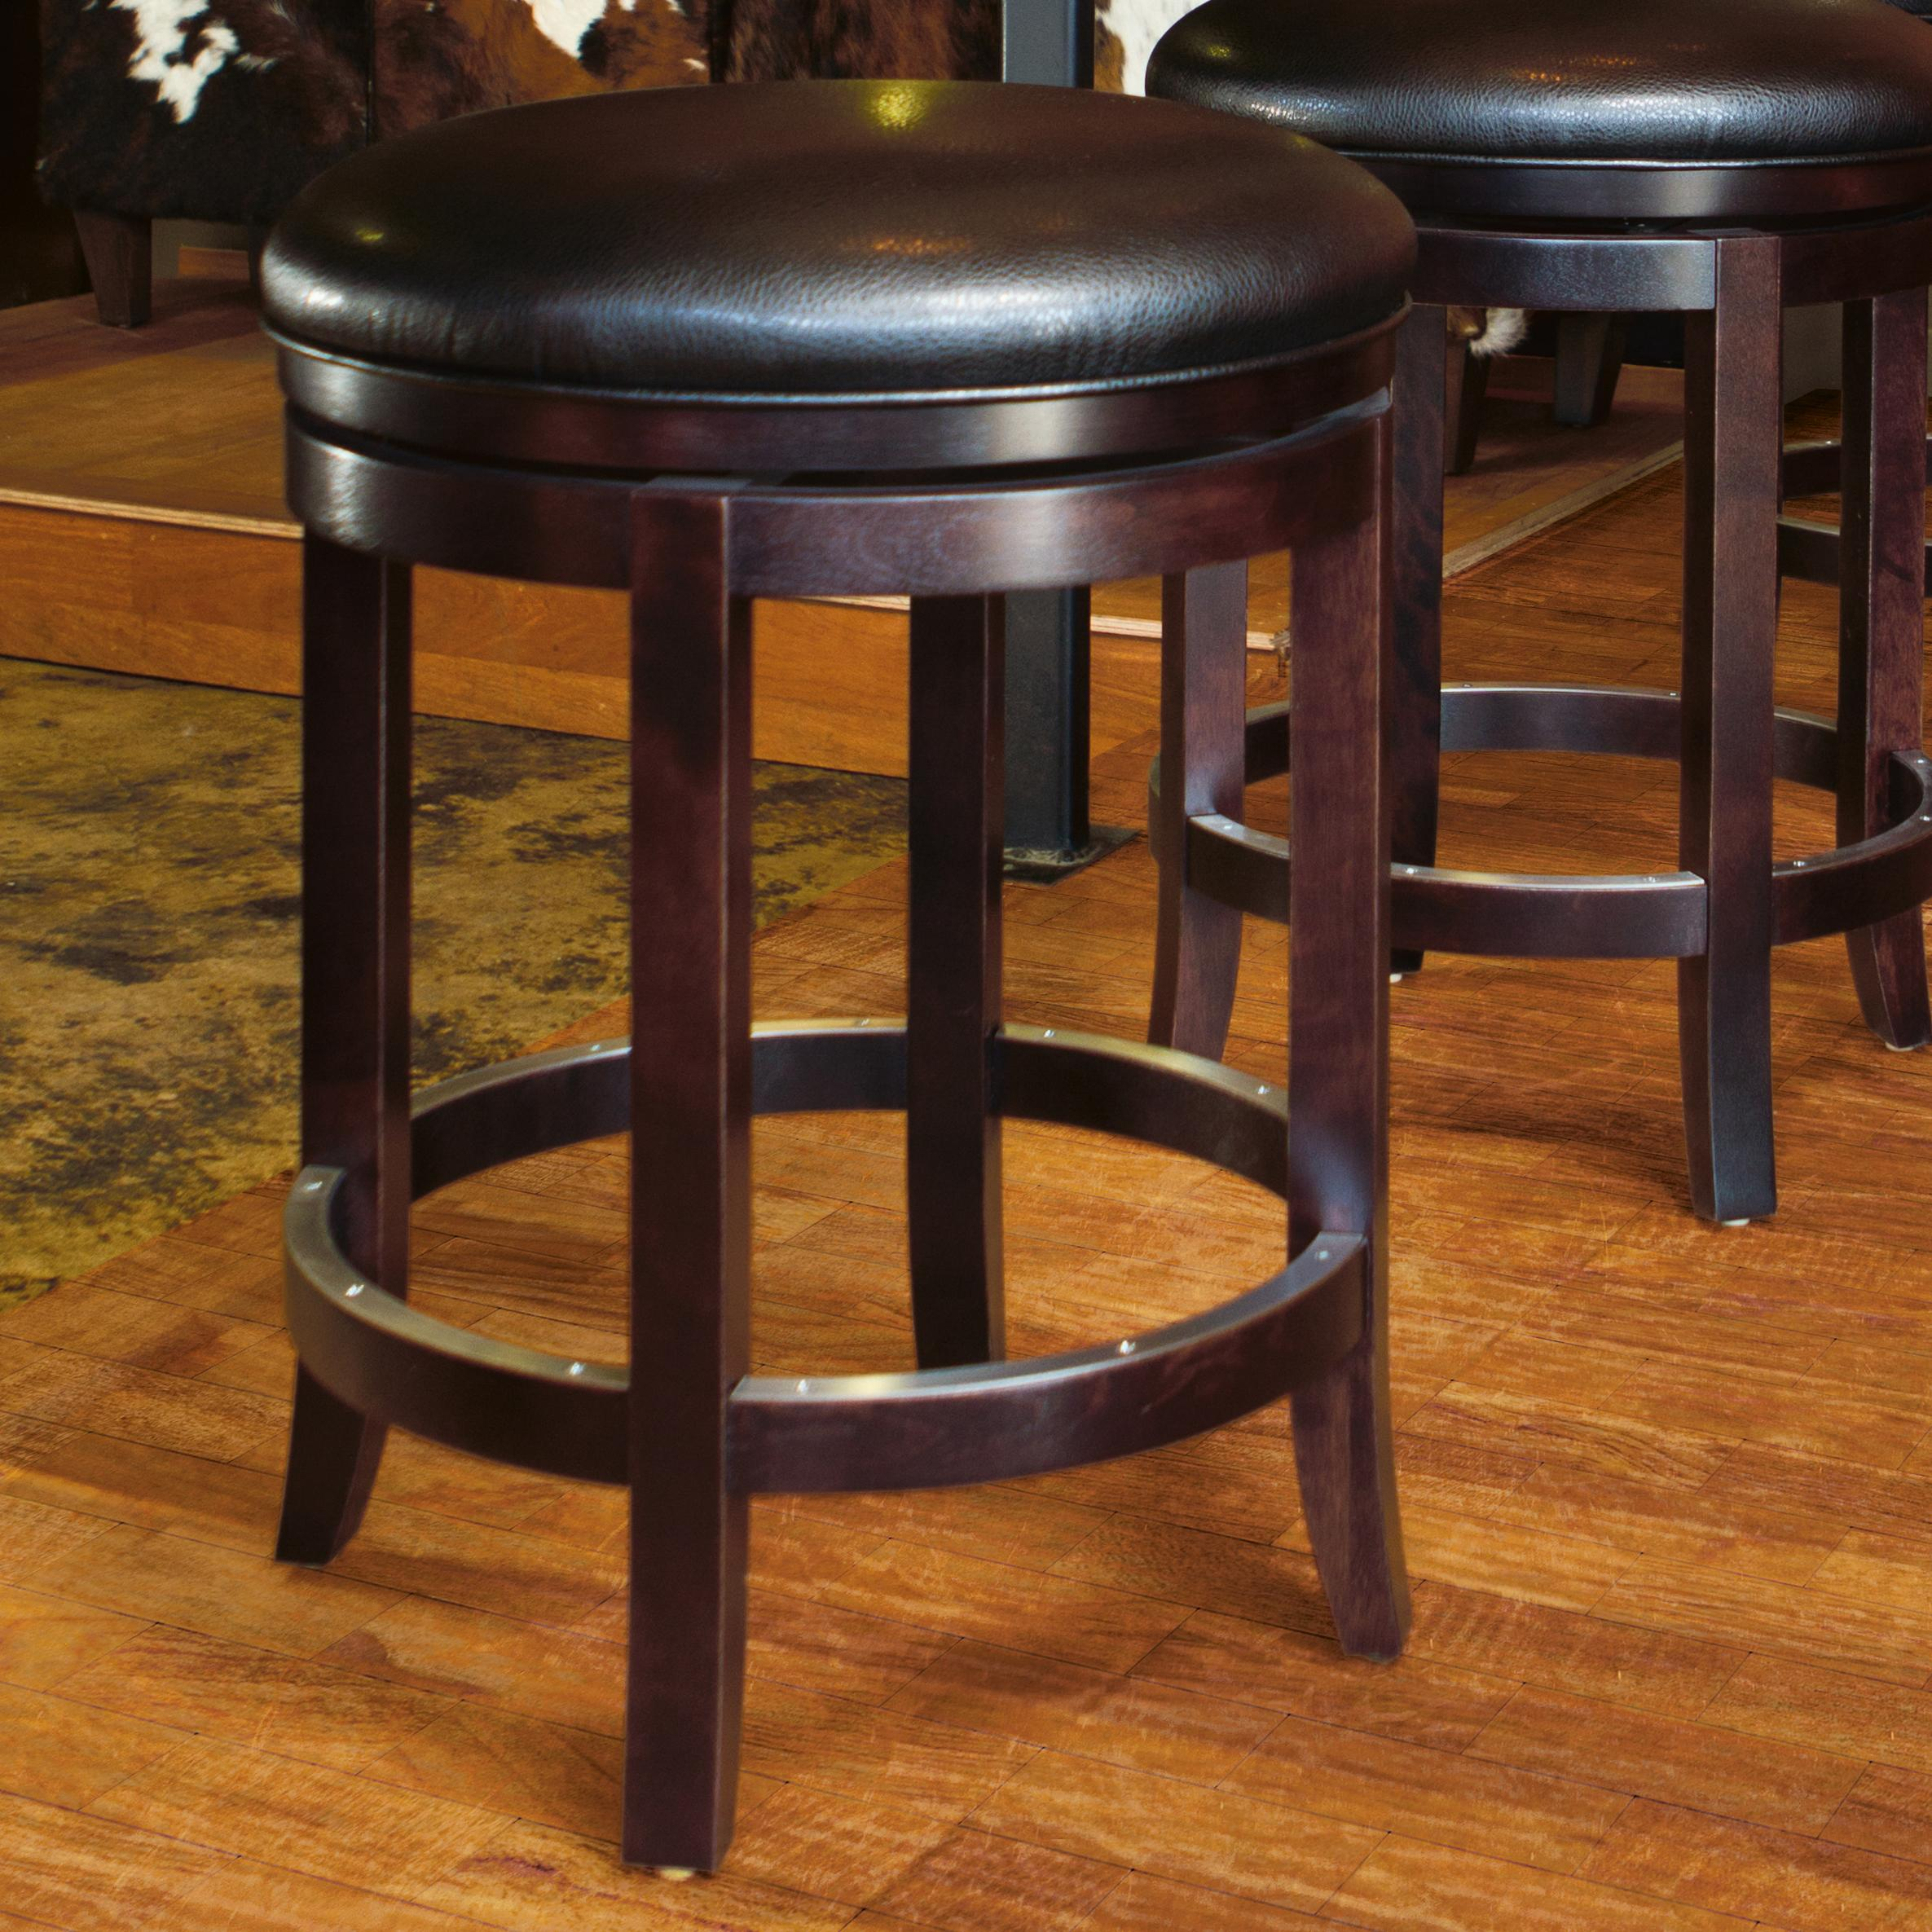 Canadel bar stools sto 0 8004 xd30m 24 s customizable 24 for 24 bar stools